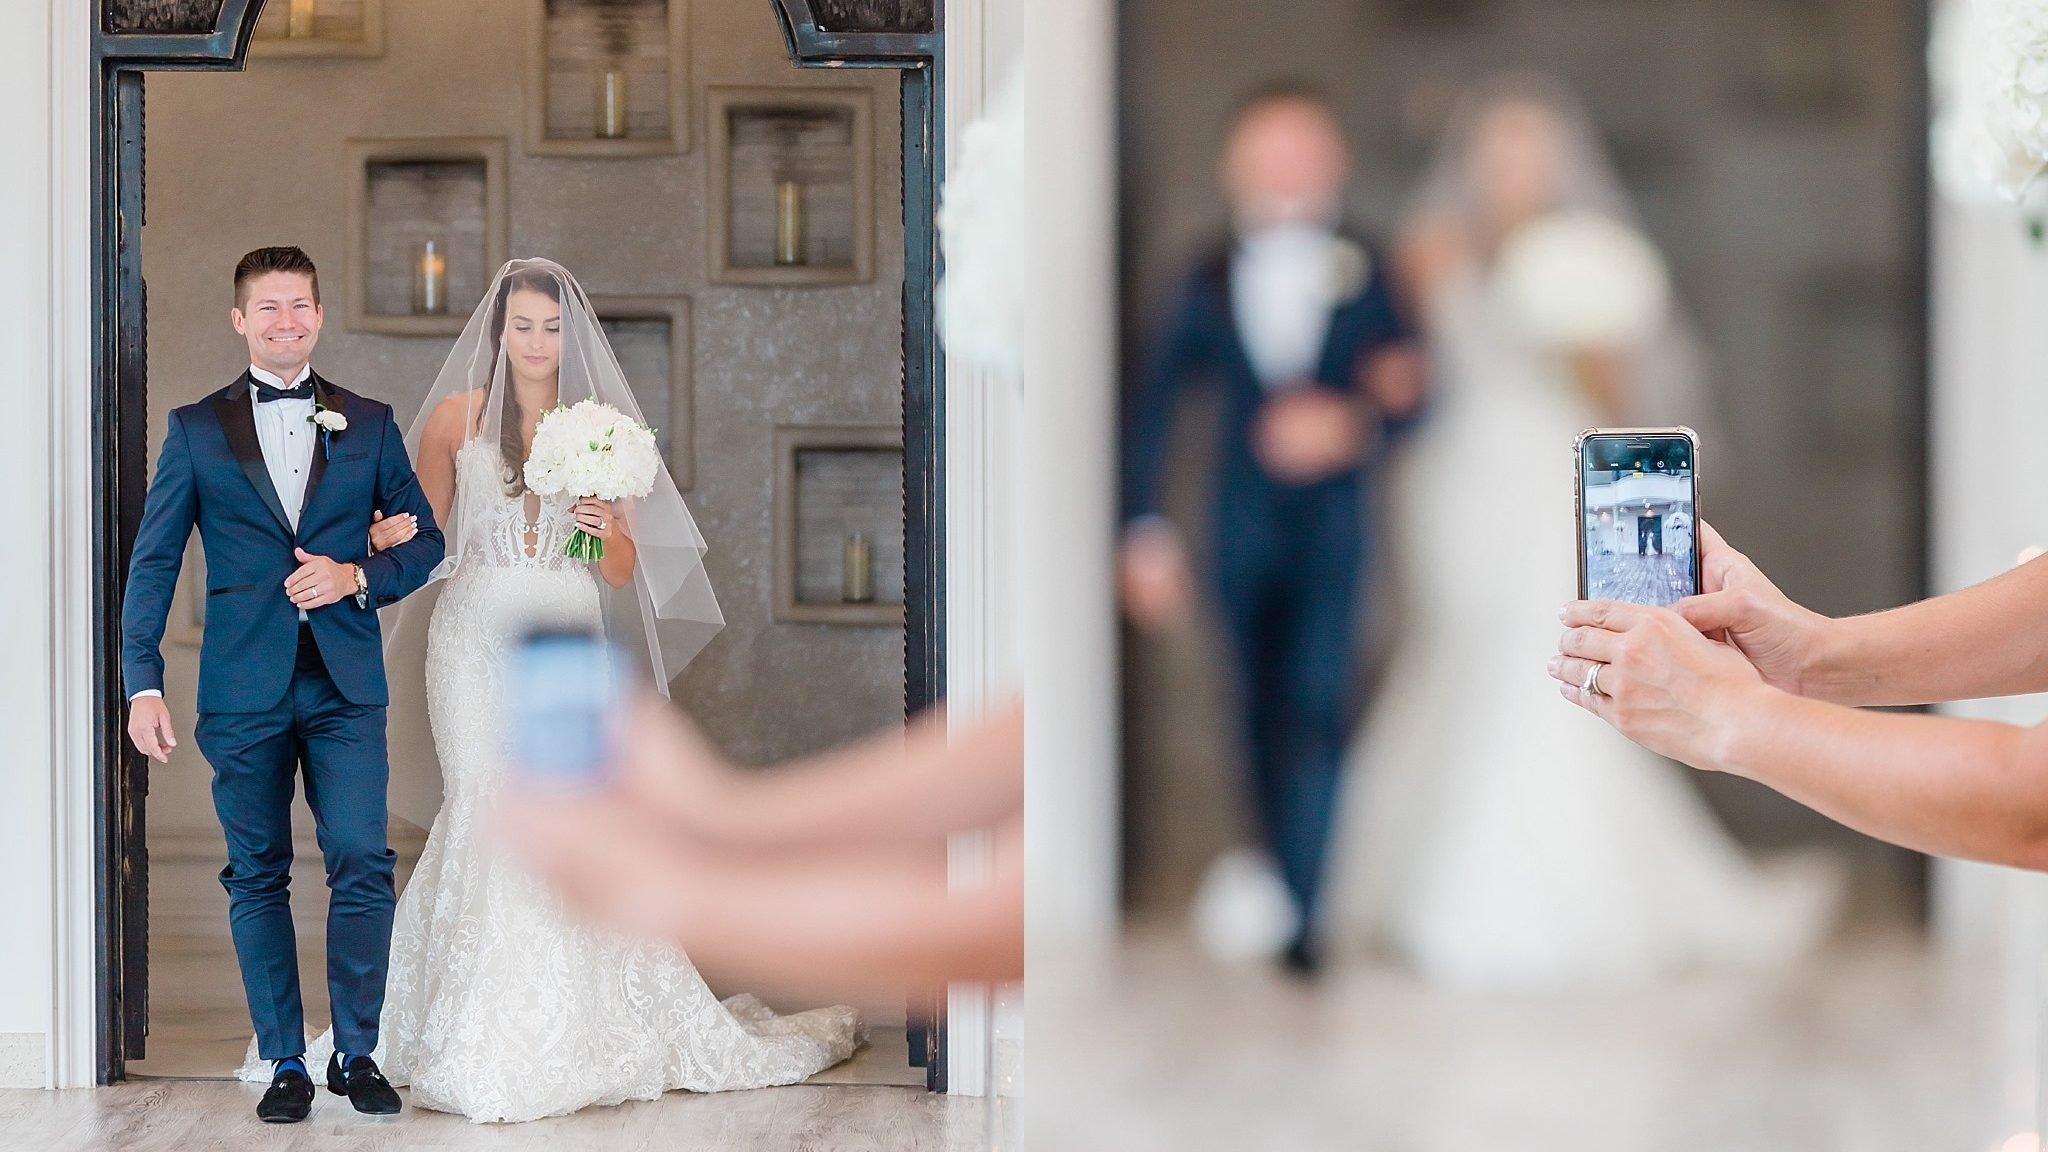 Wedding photos ruined by a woman with her iPhone